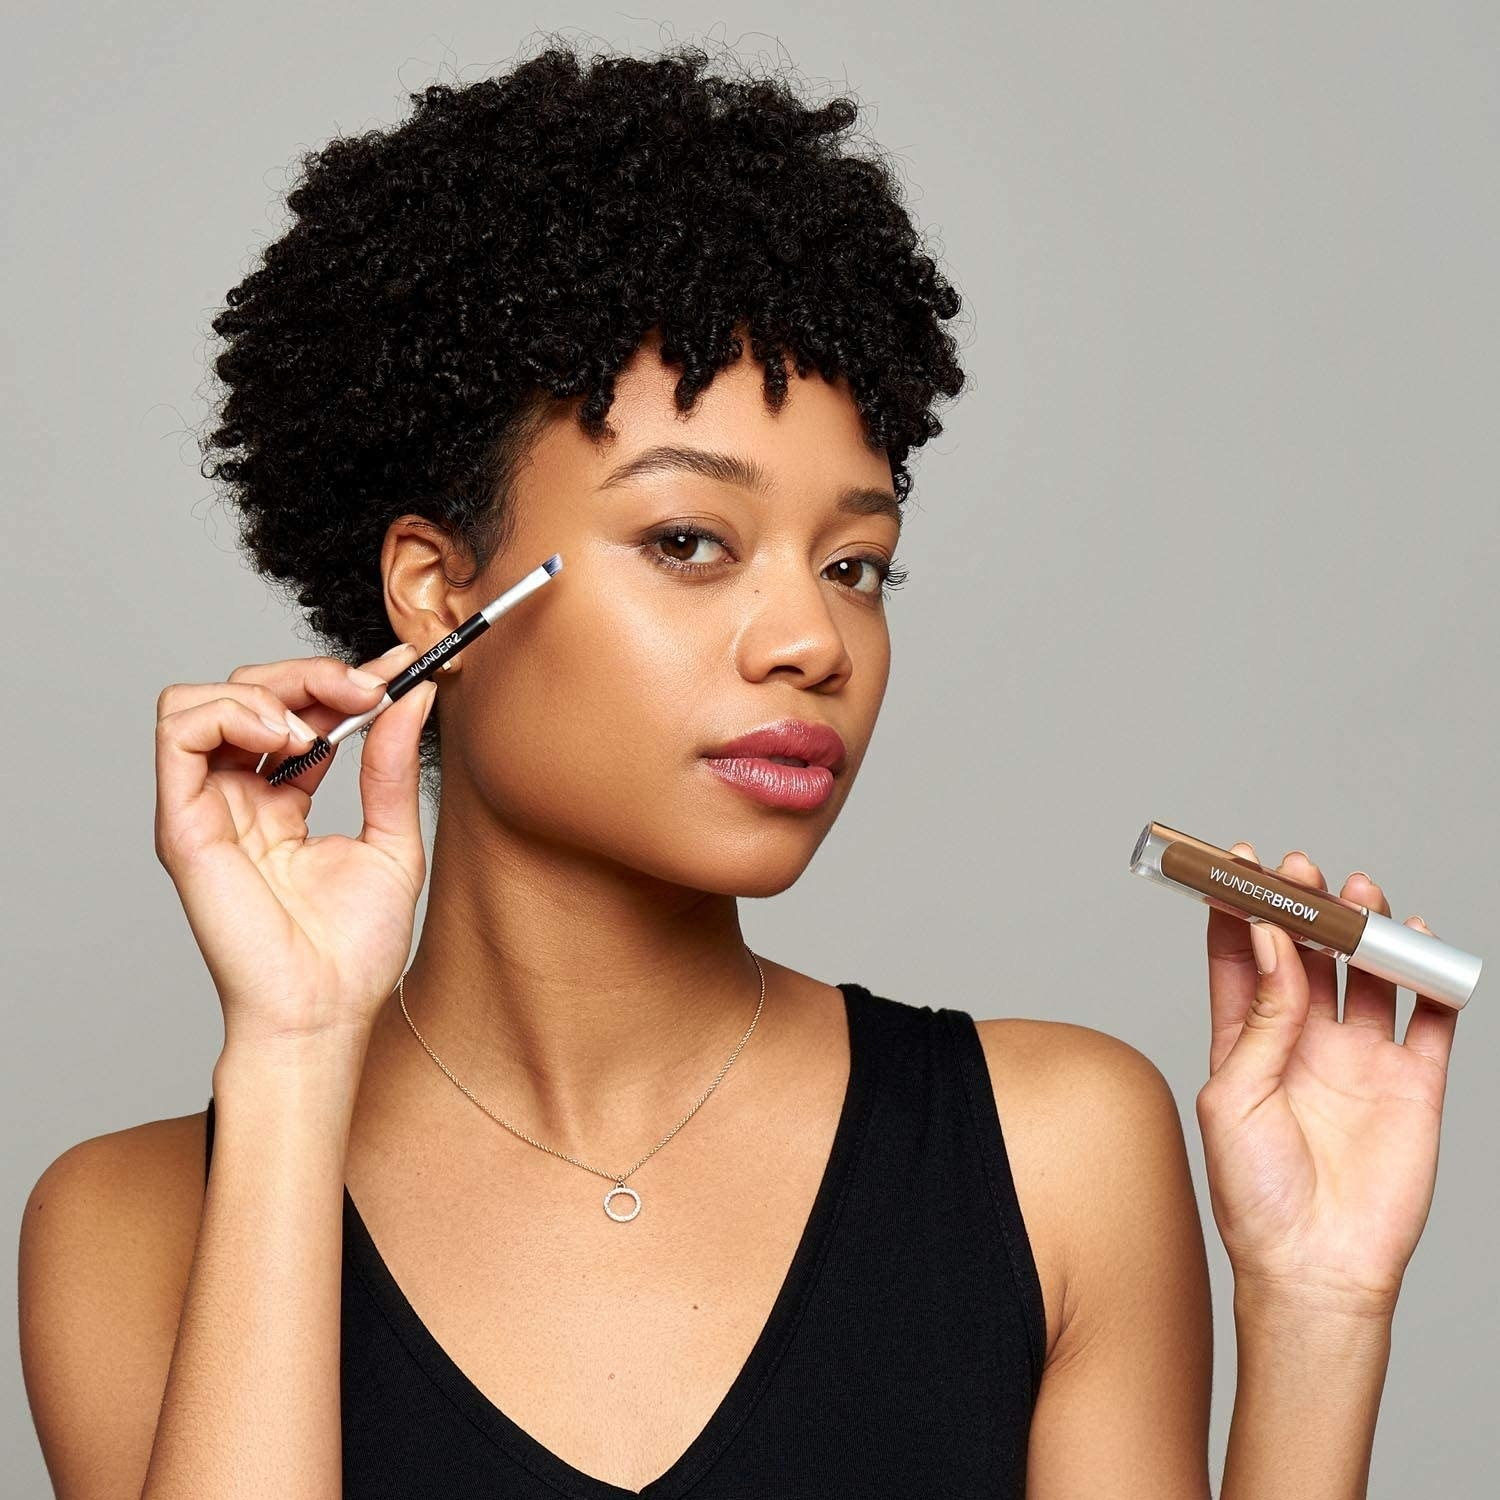 A person holding a tube of brow gel in one hand and a small makeup brush in the other